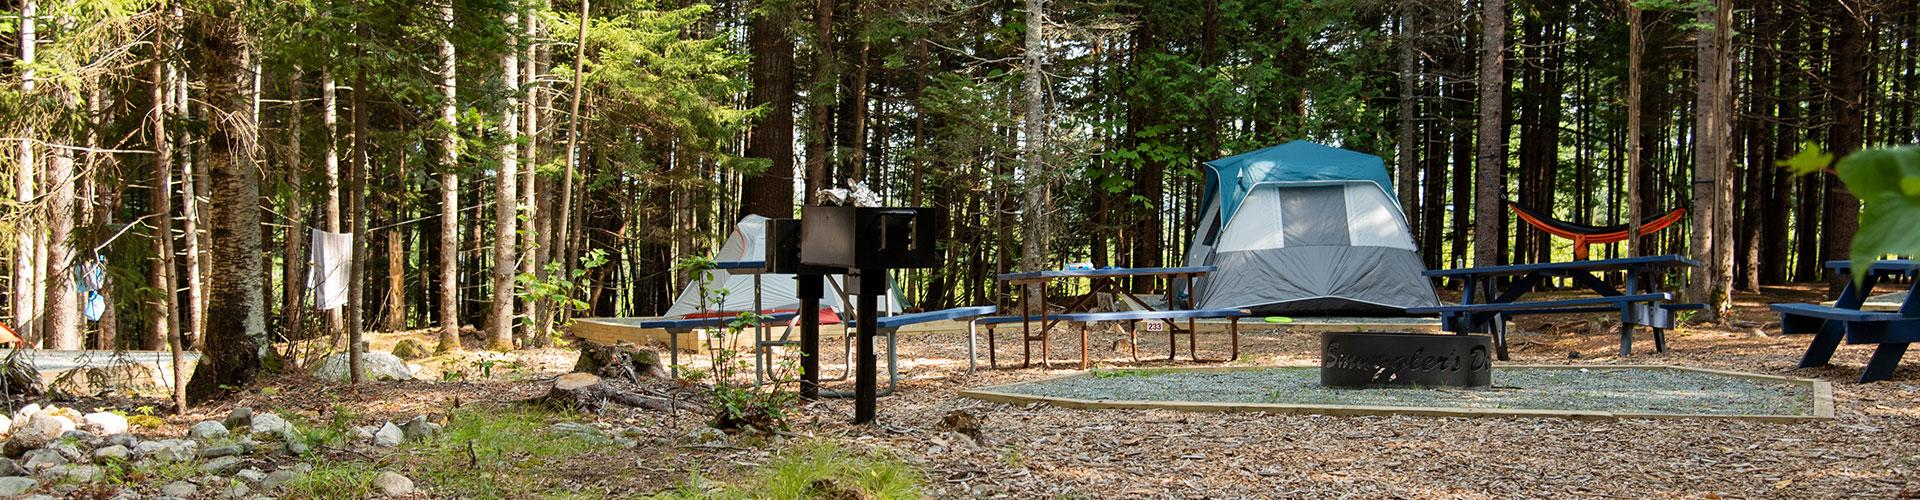 campsite on mount desert island, maine